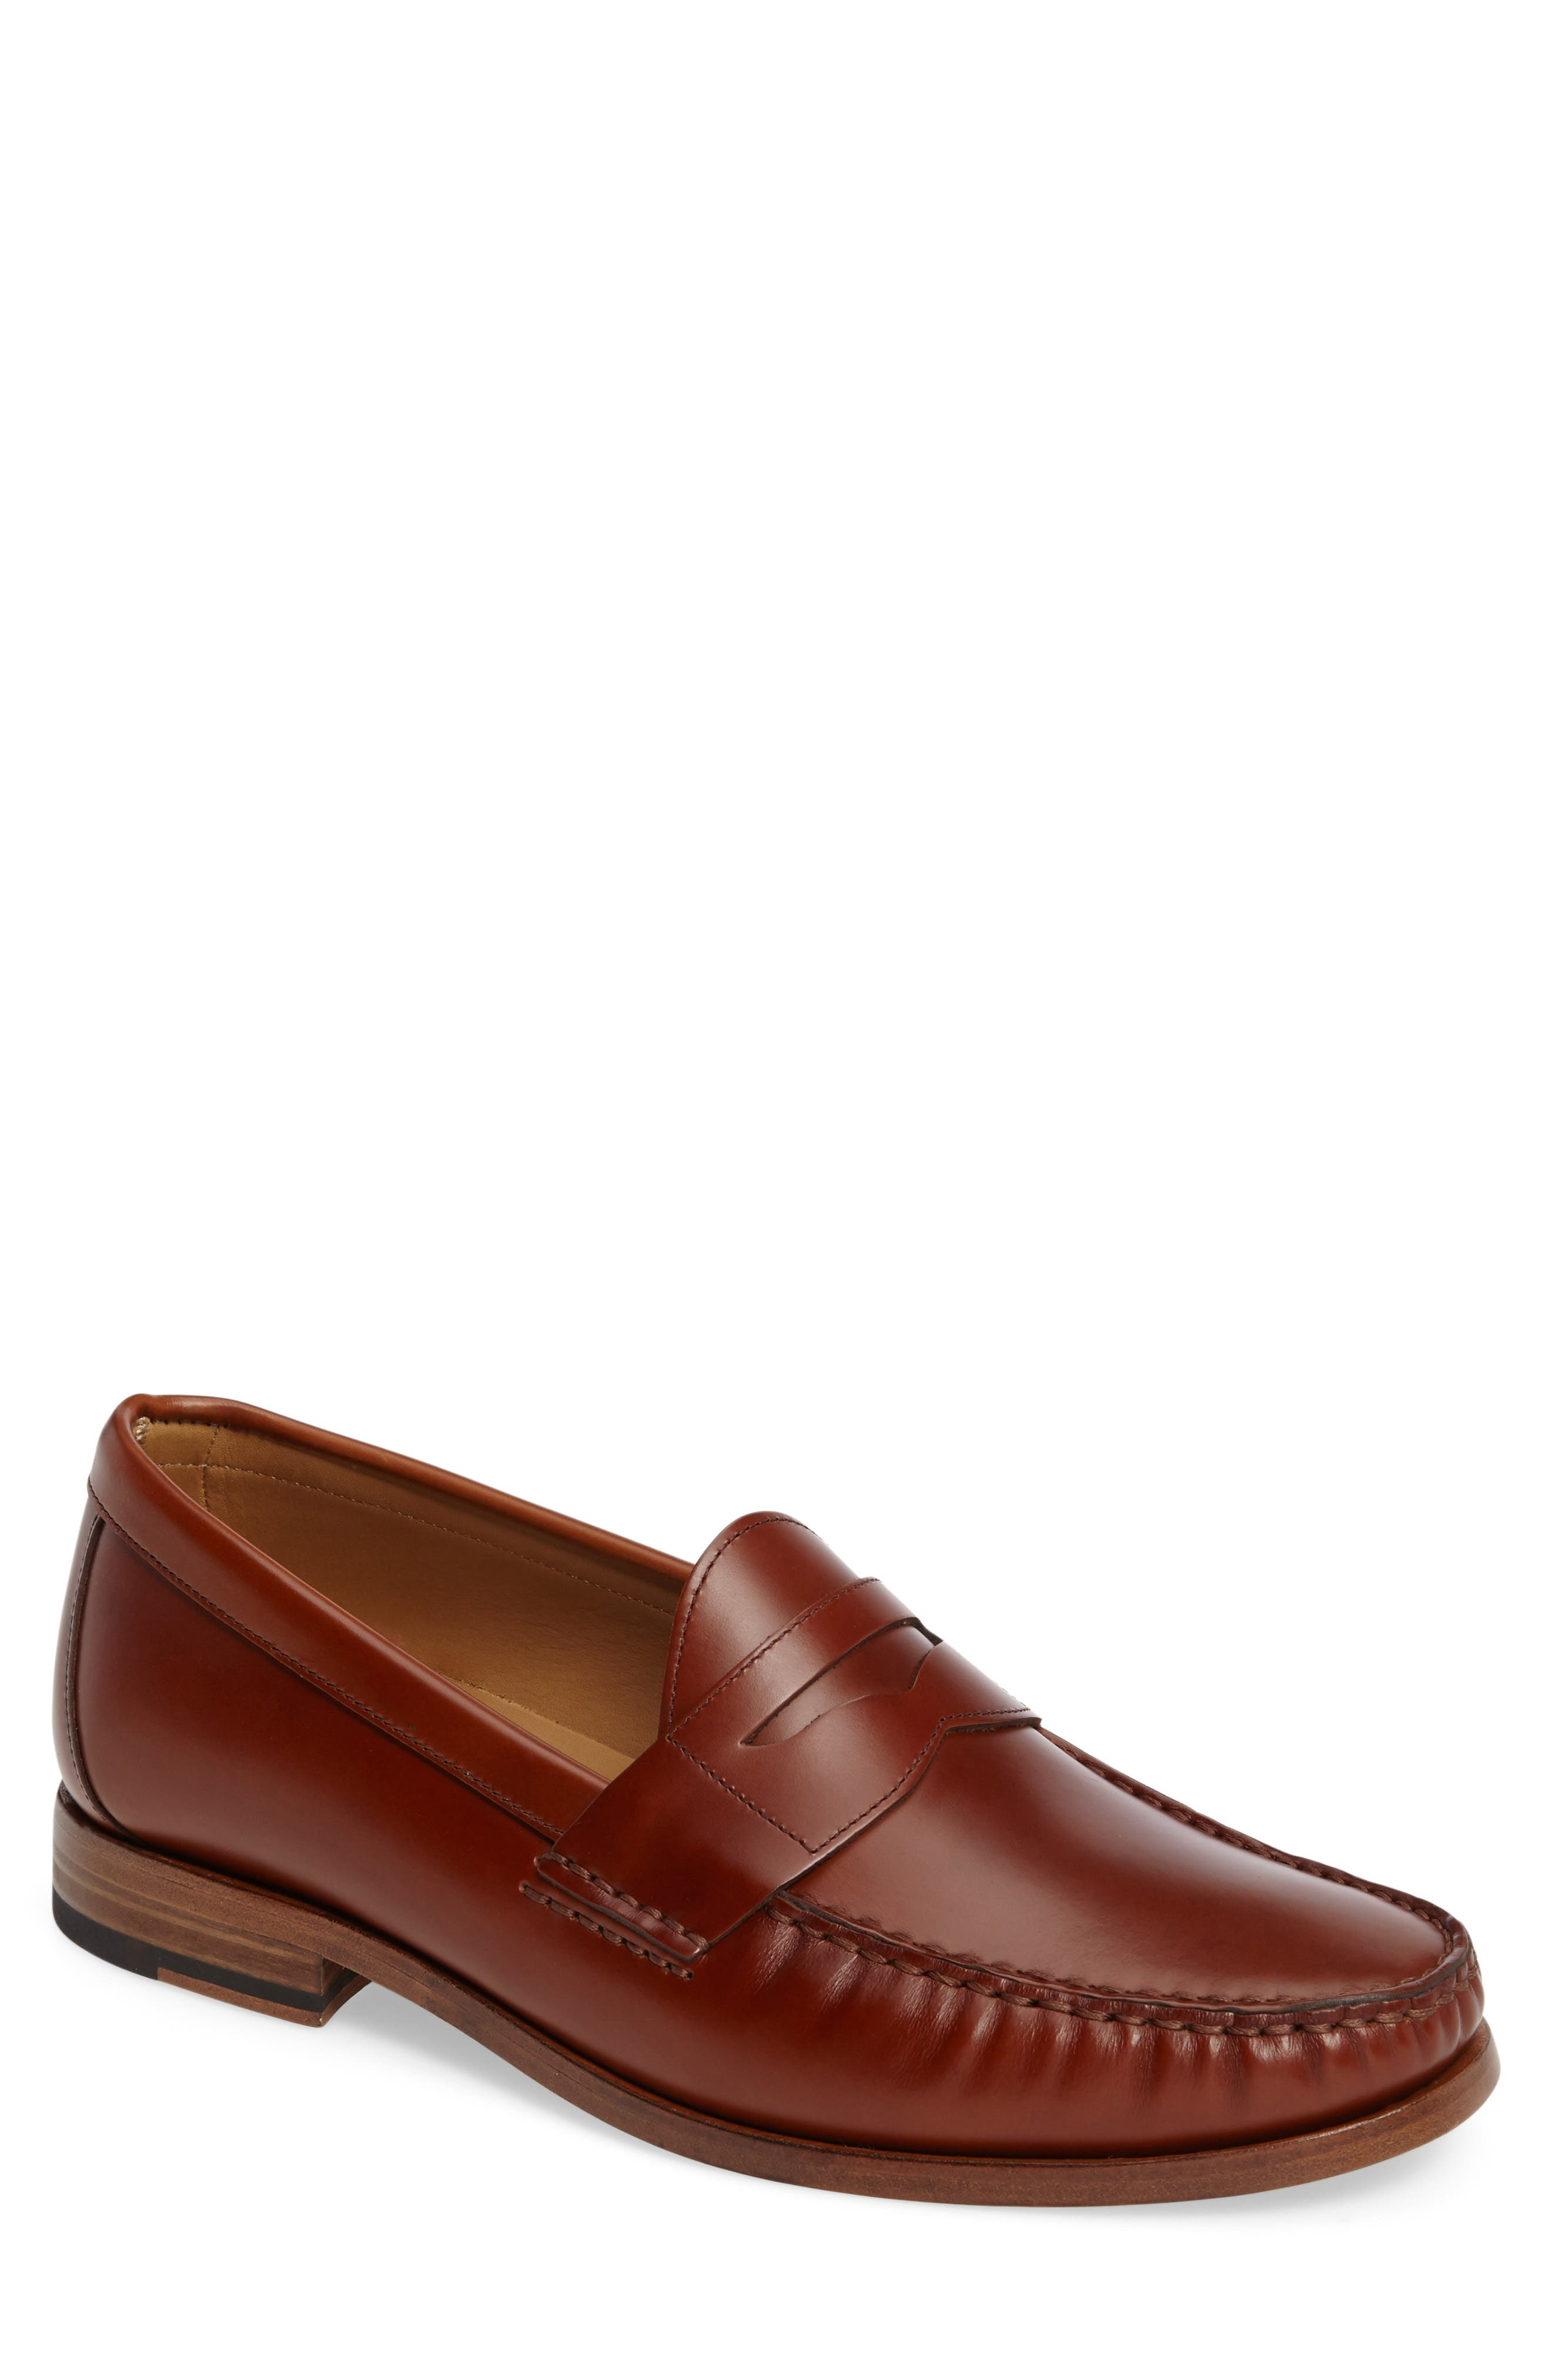 Charlie Penny Loafer,                         Main,                         color, COGNAC LEATHER